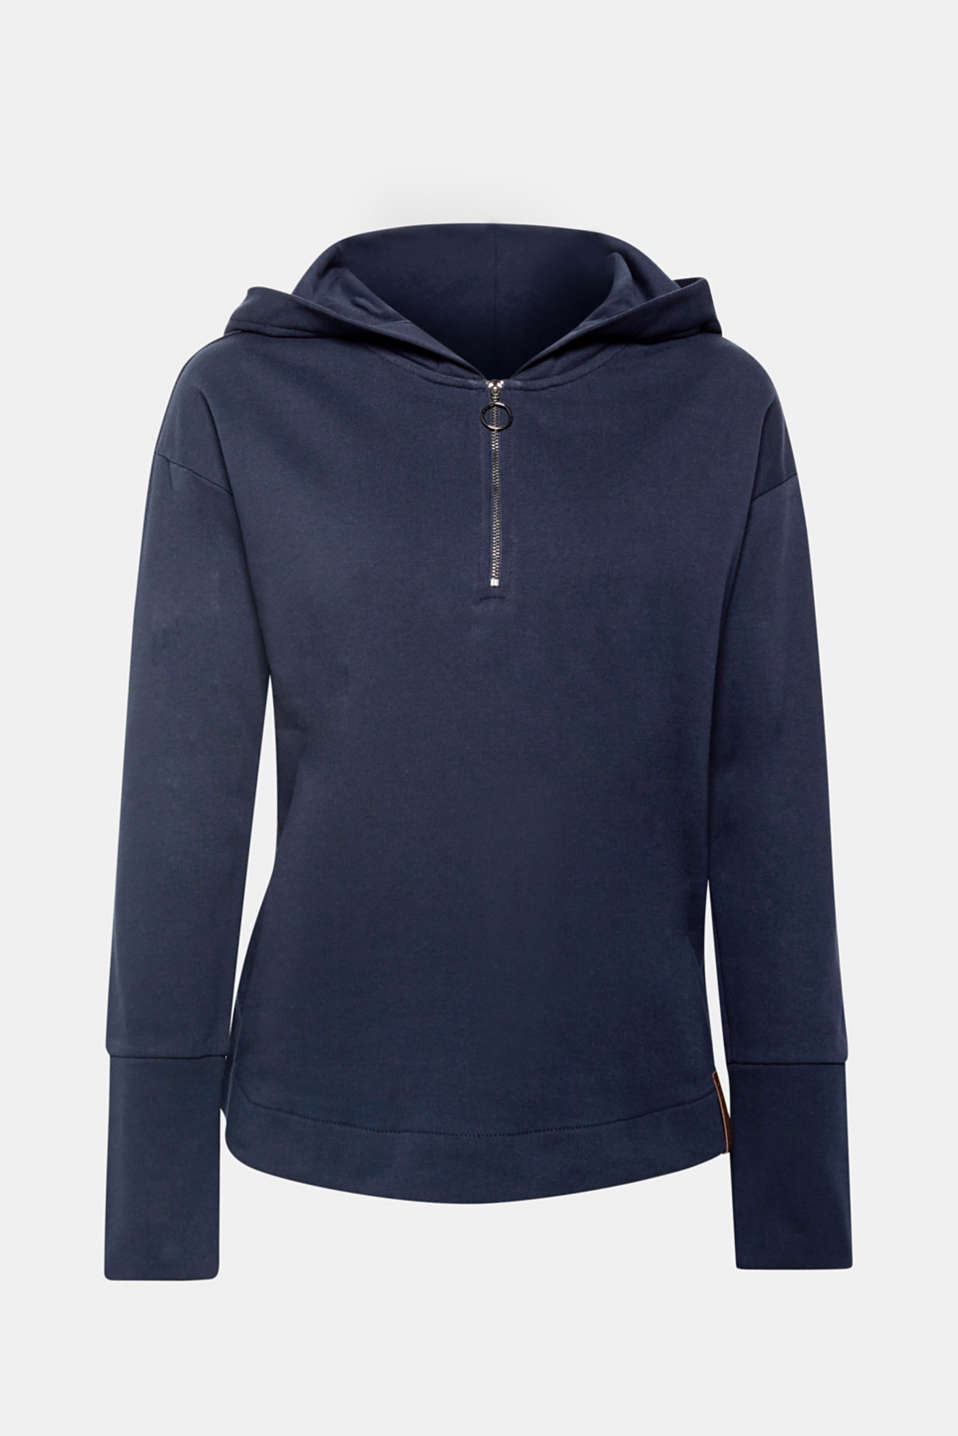 Relax in this lightweight, pure cotton hoodie with a softly brushed interior and a slightly flared silhouette!